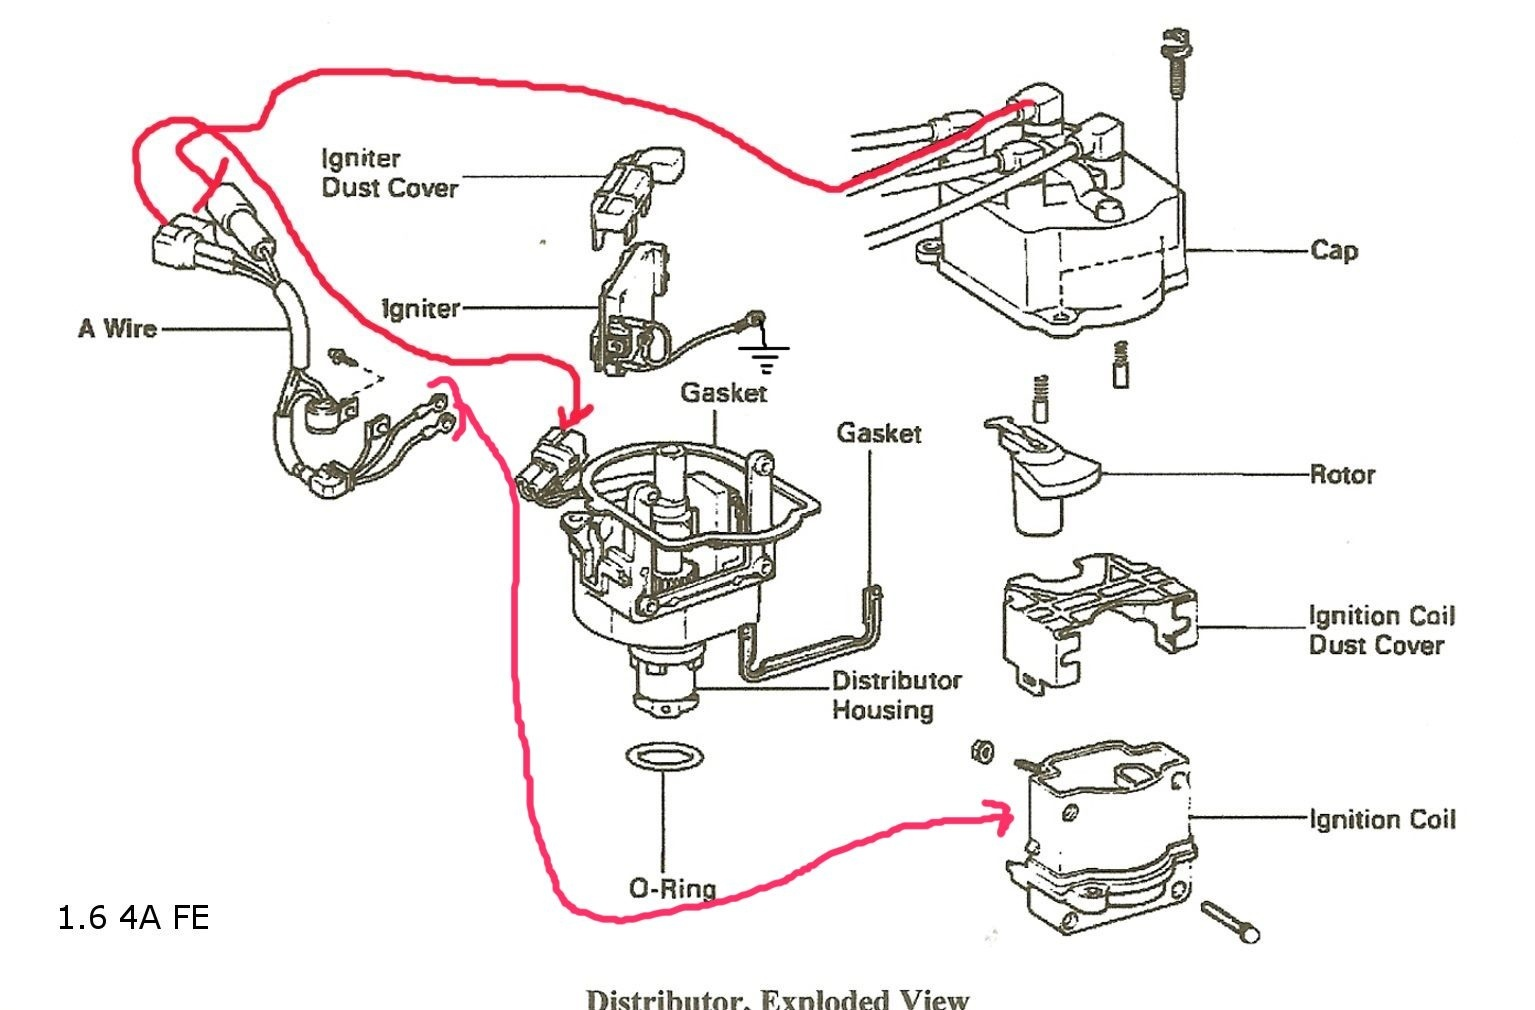 1995 toyota camry engine diagram rj11 socket wiring australia celica questions - does anybody know what can cause an 88 st to not get spark ...